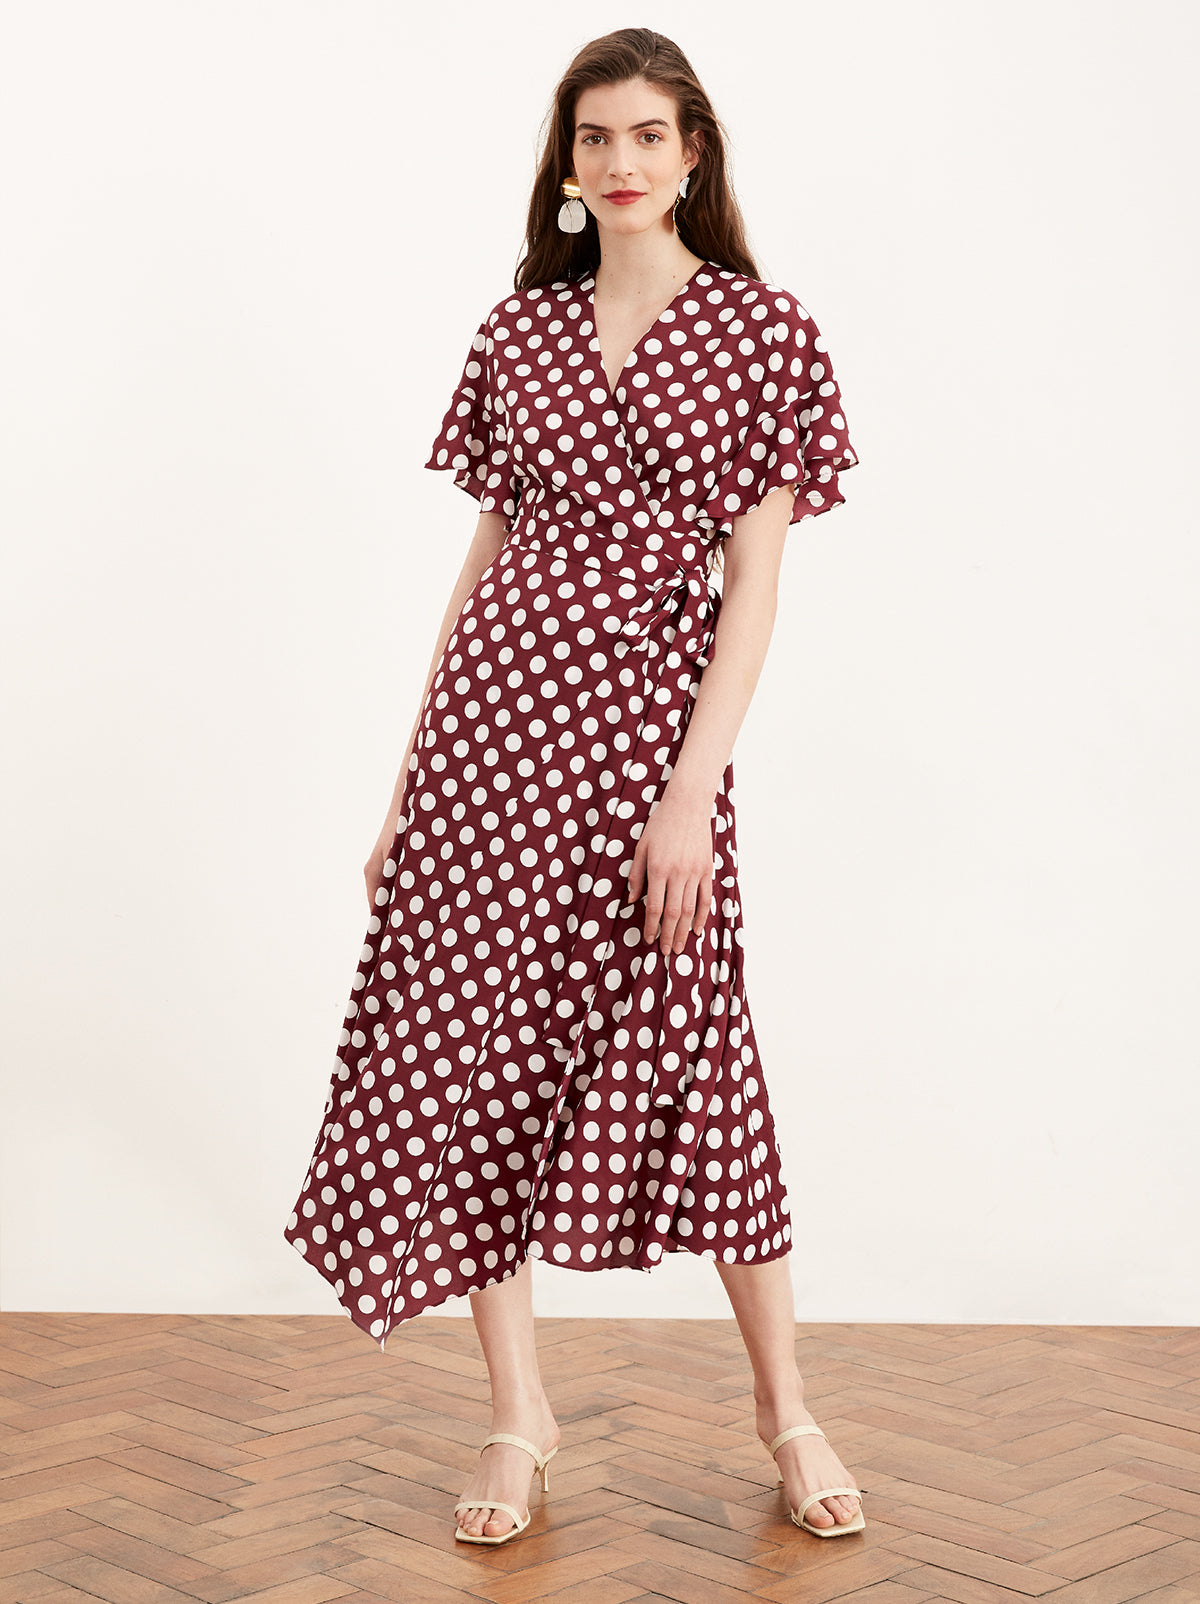 Eliana Aubergine Polka Dot Wrap Dress by KITRI Studio